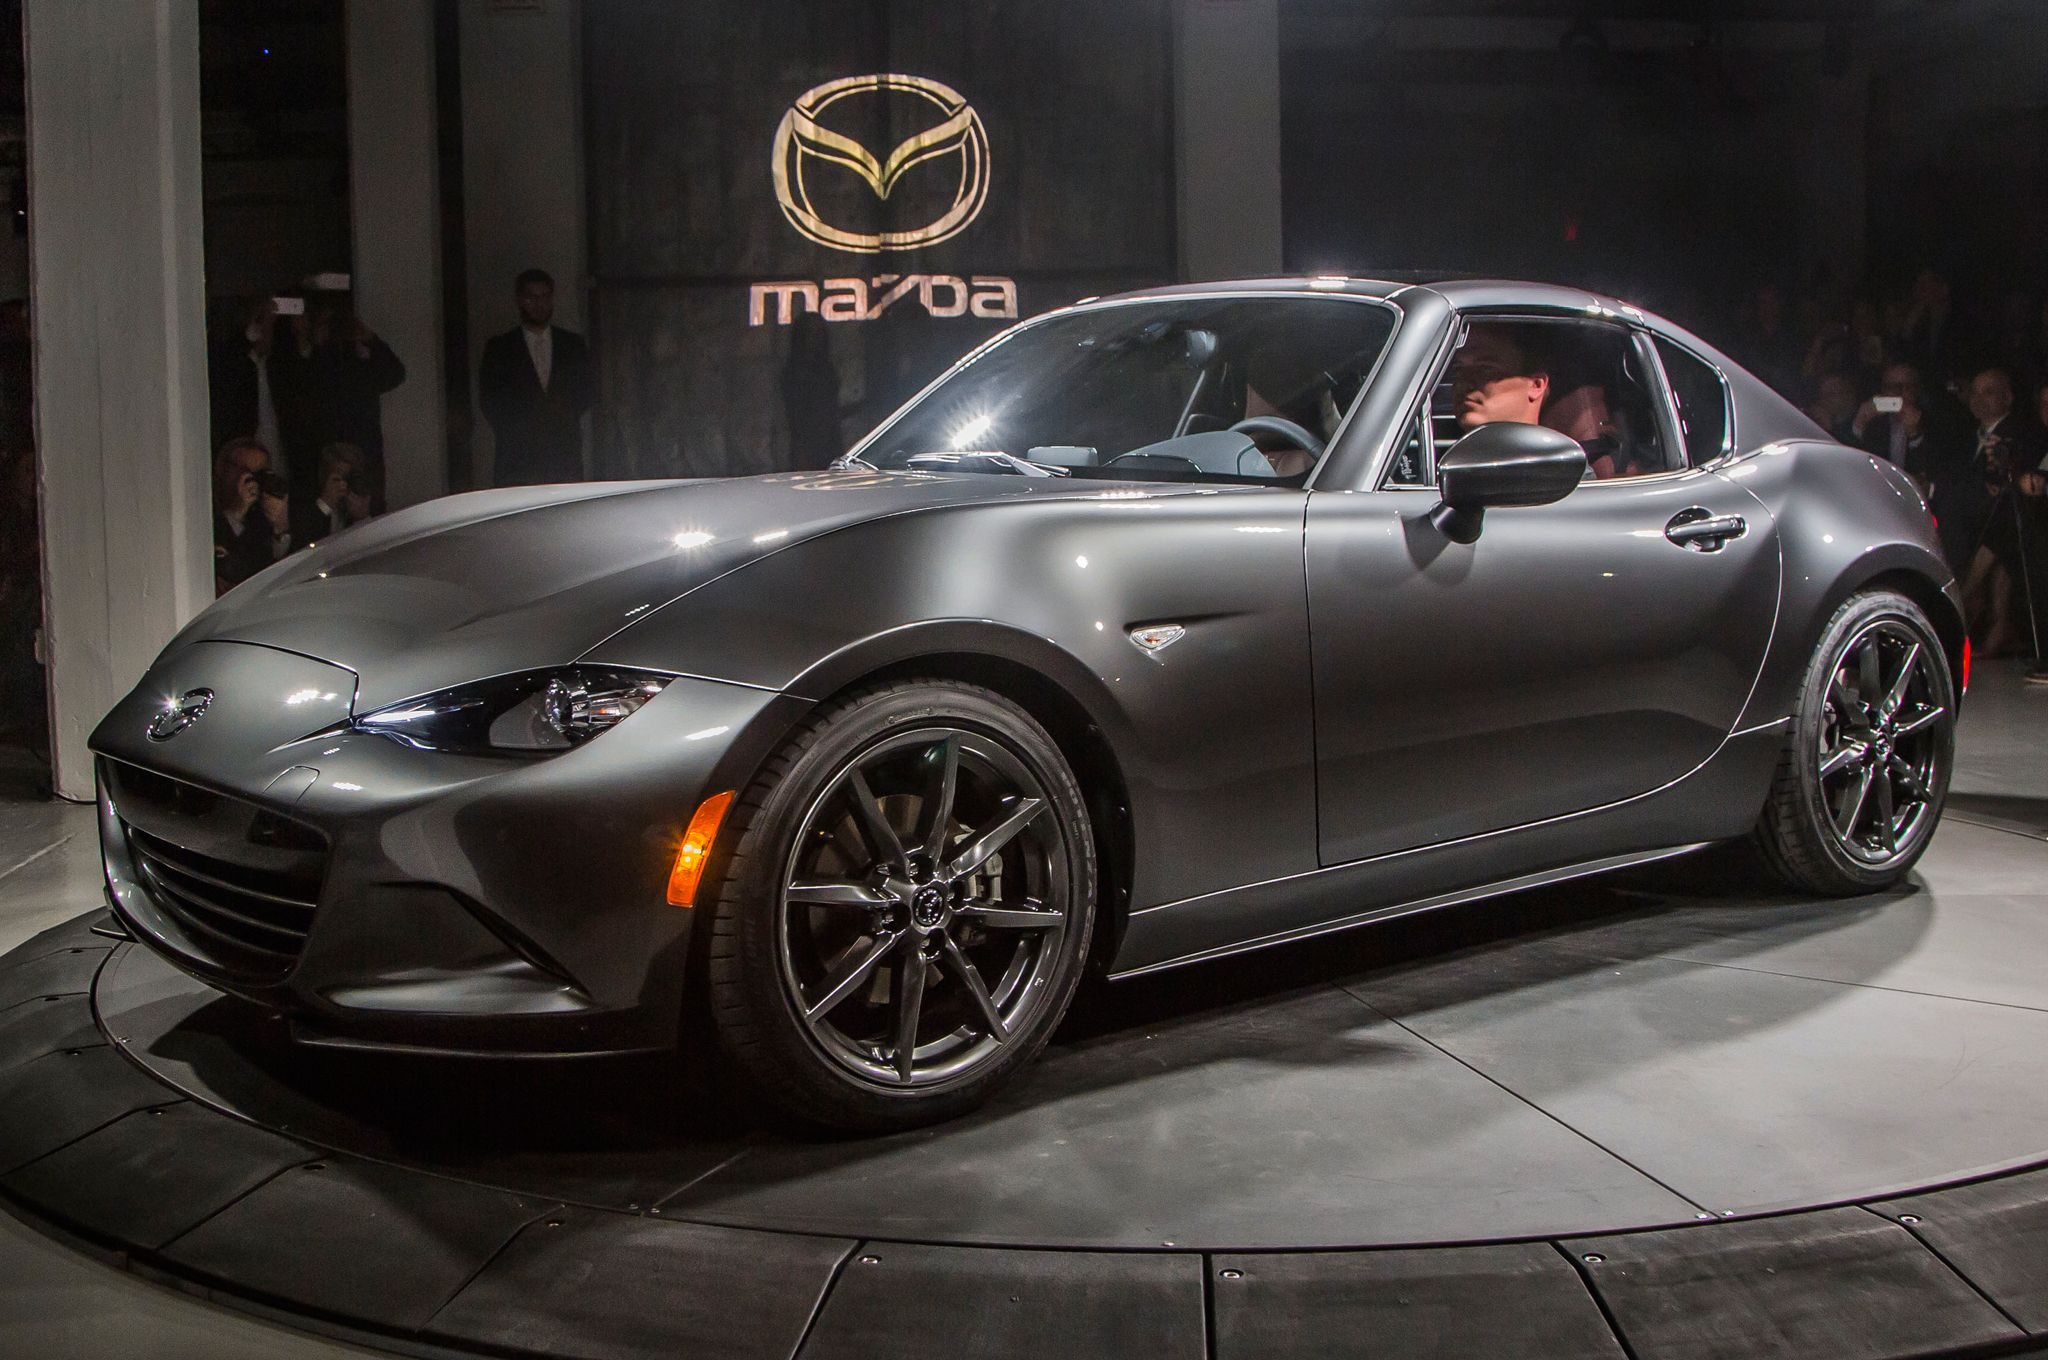 The 2017 Mazda Mx 5 Rf Has Been Revealed At Eve Of 2016